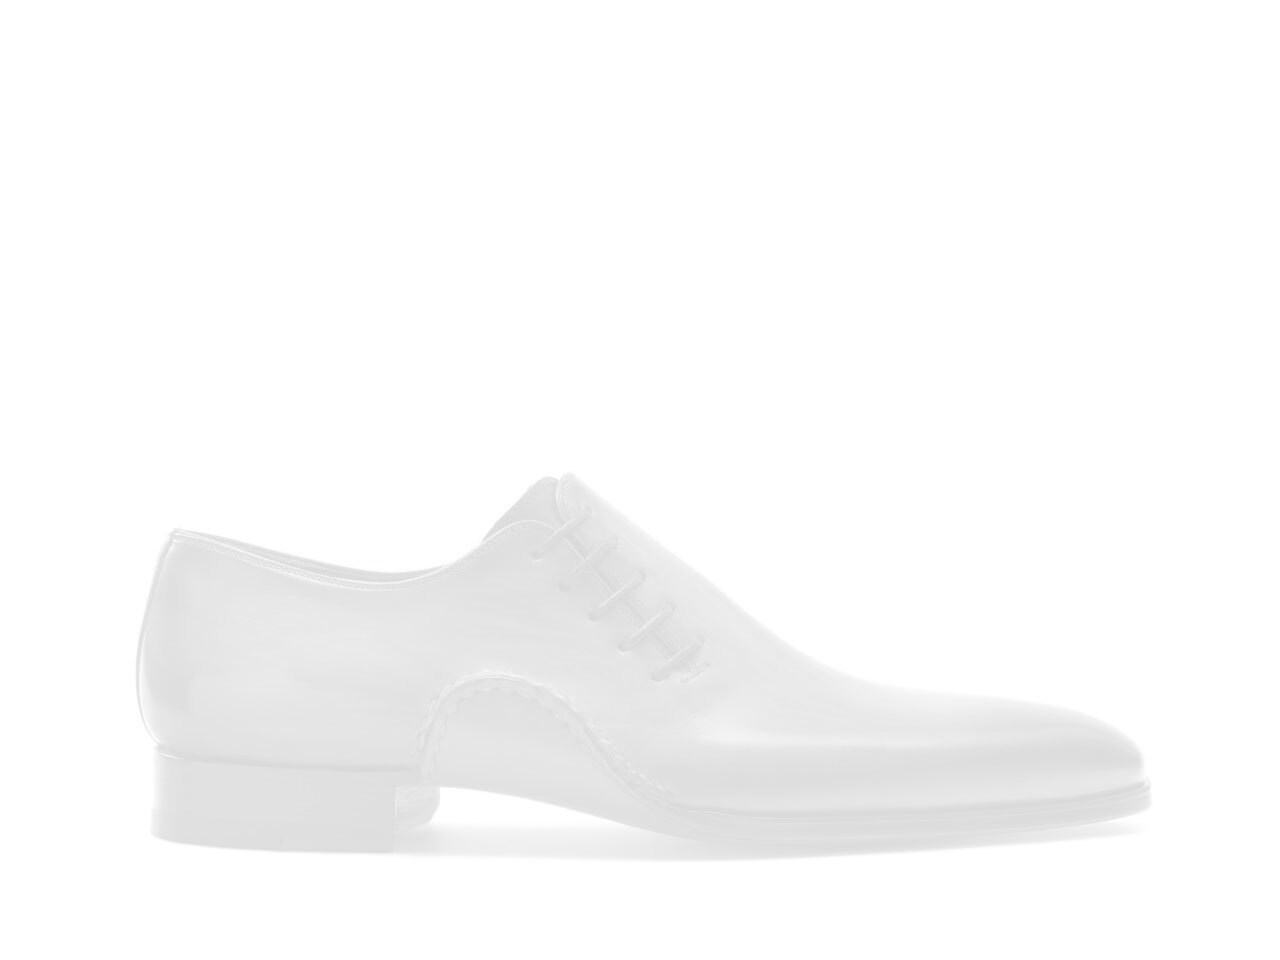 Pair of the Magnanni Sona White Men's Sneakers